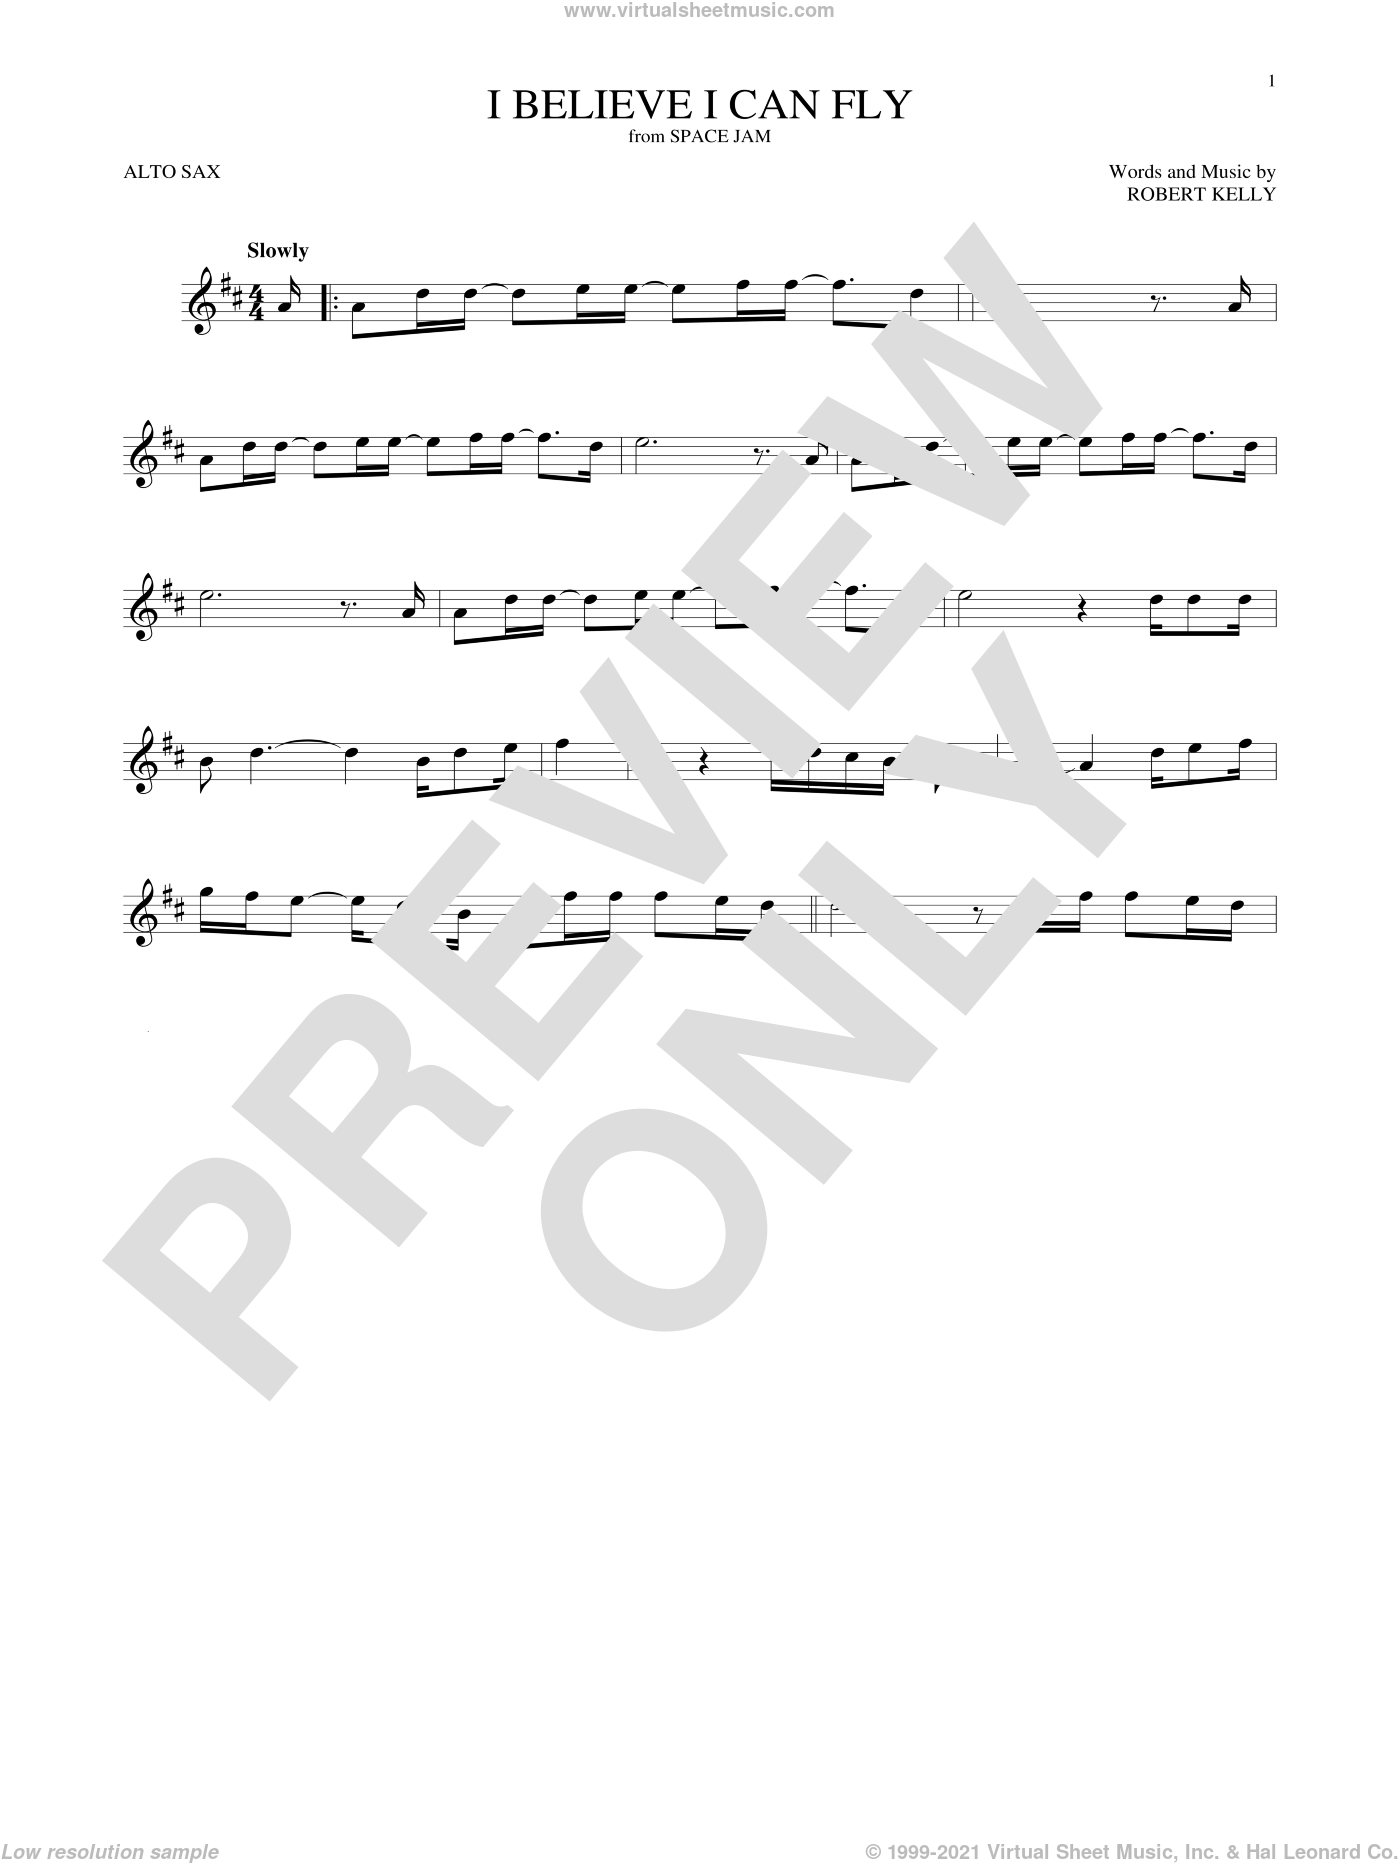 I Believe I Can Fly sheet music for alto saxophone solo ( Sax) by Robert Kelly. Score Image Preview.